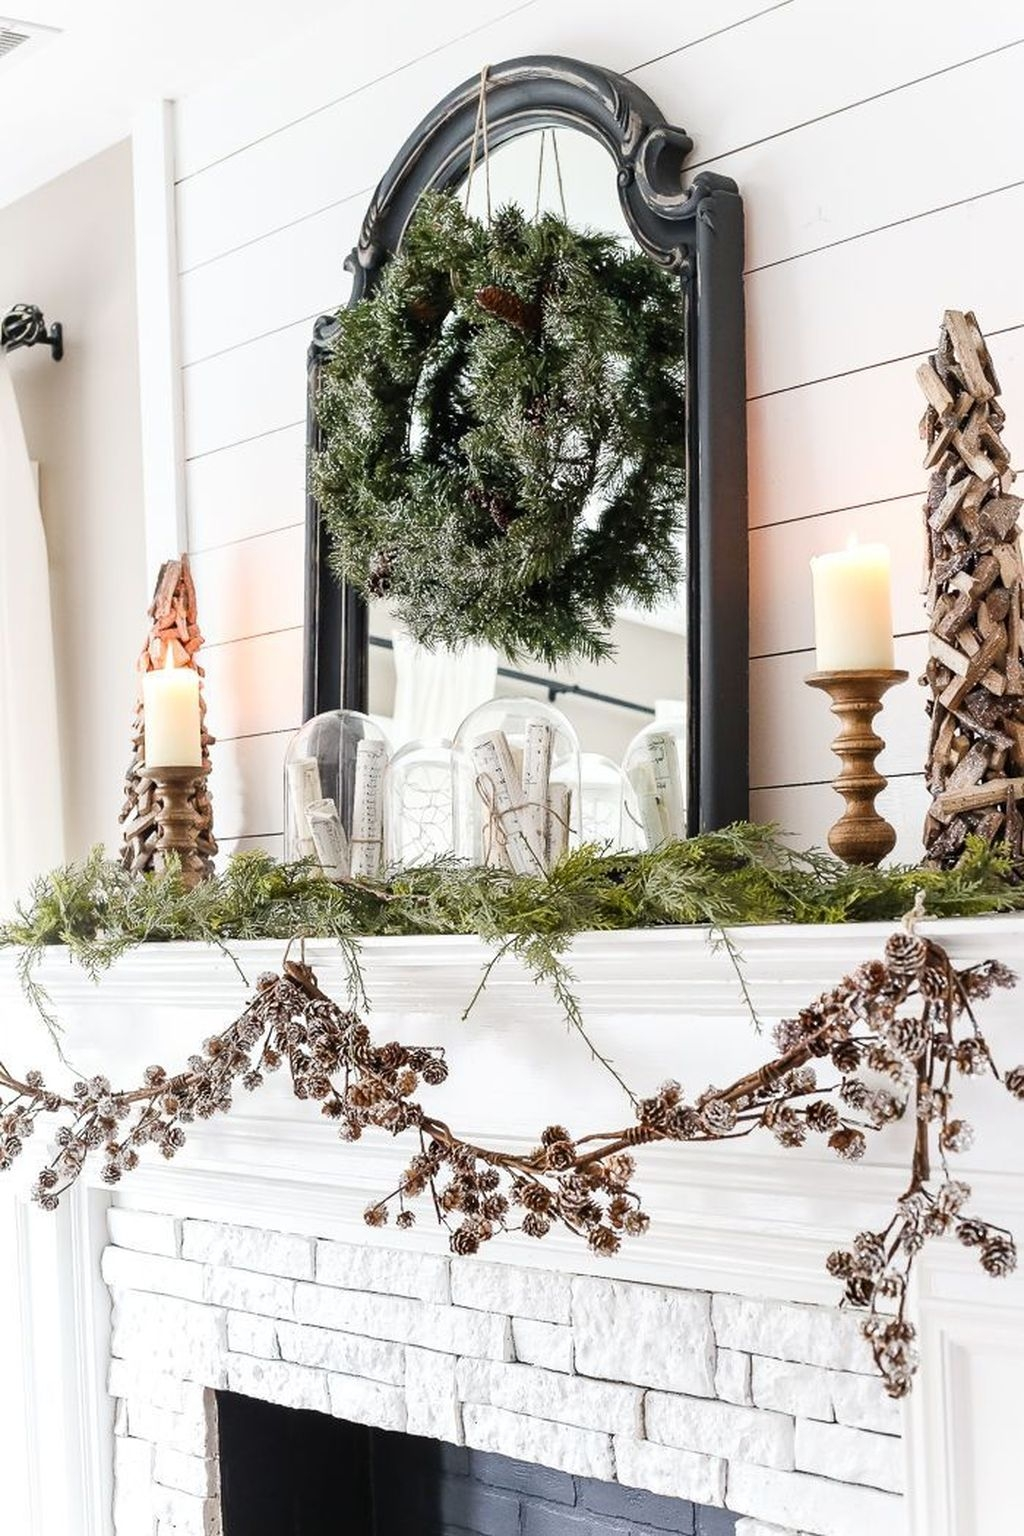 Impressive Diy Winter Ideas After Christmas 37